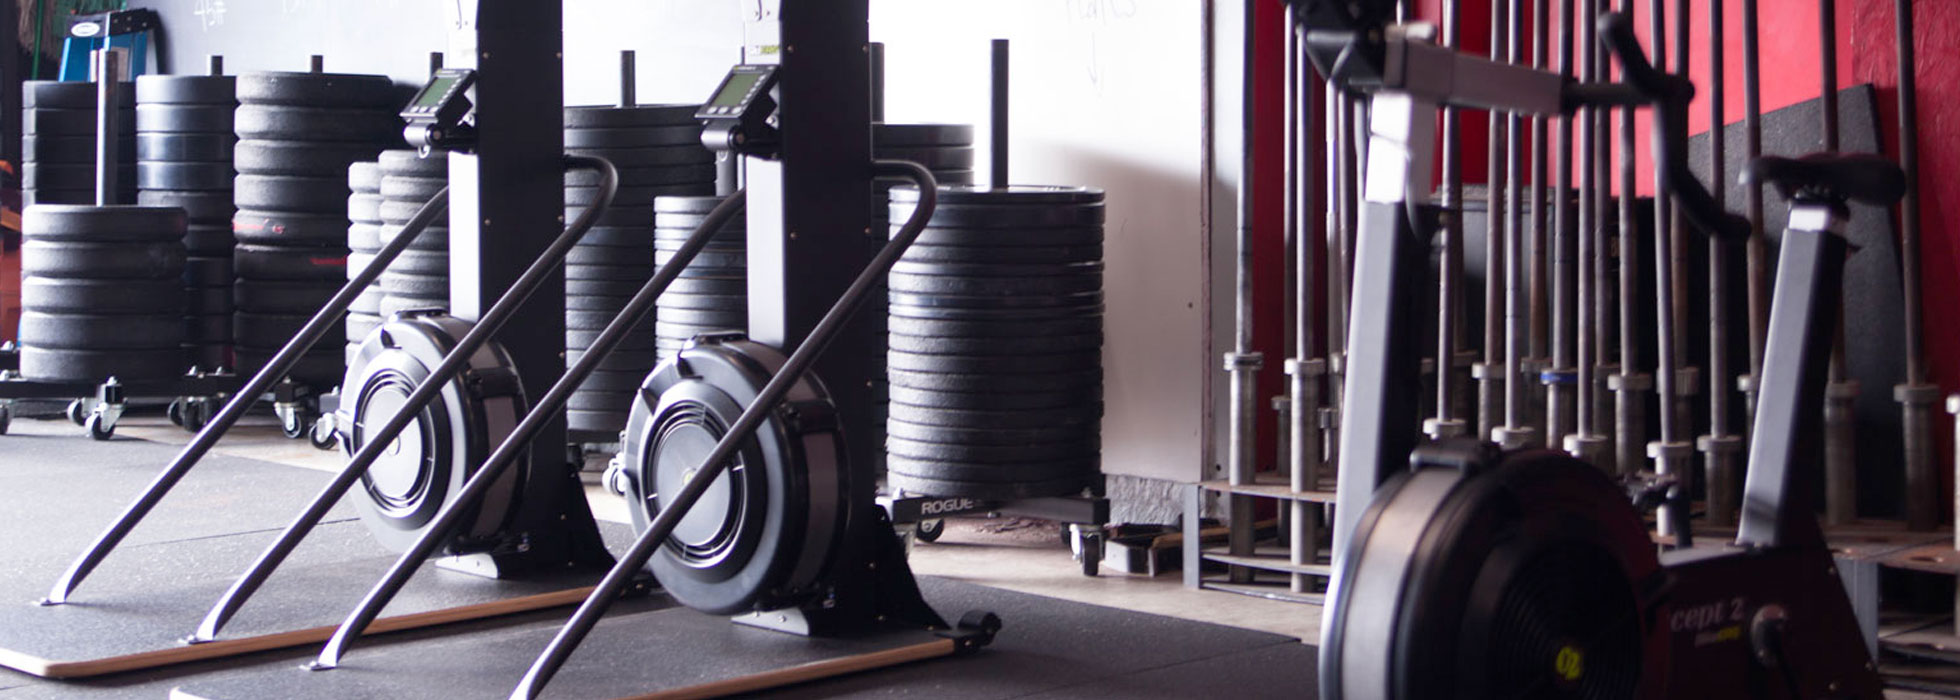 Finding The Best Gyms Near Me In Gretna